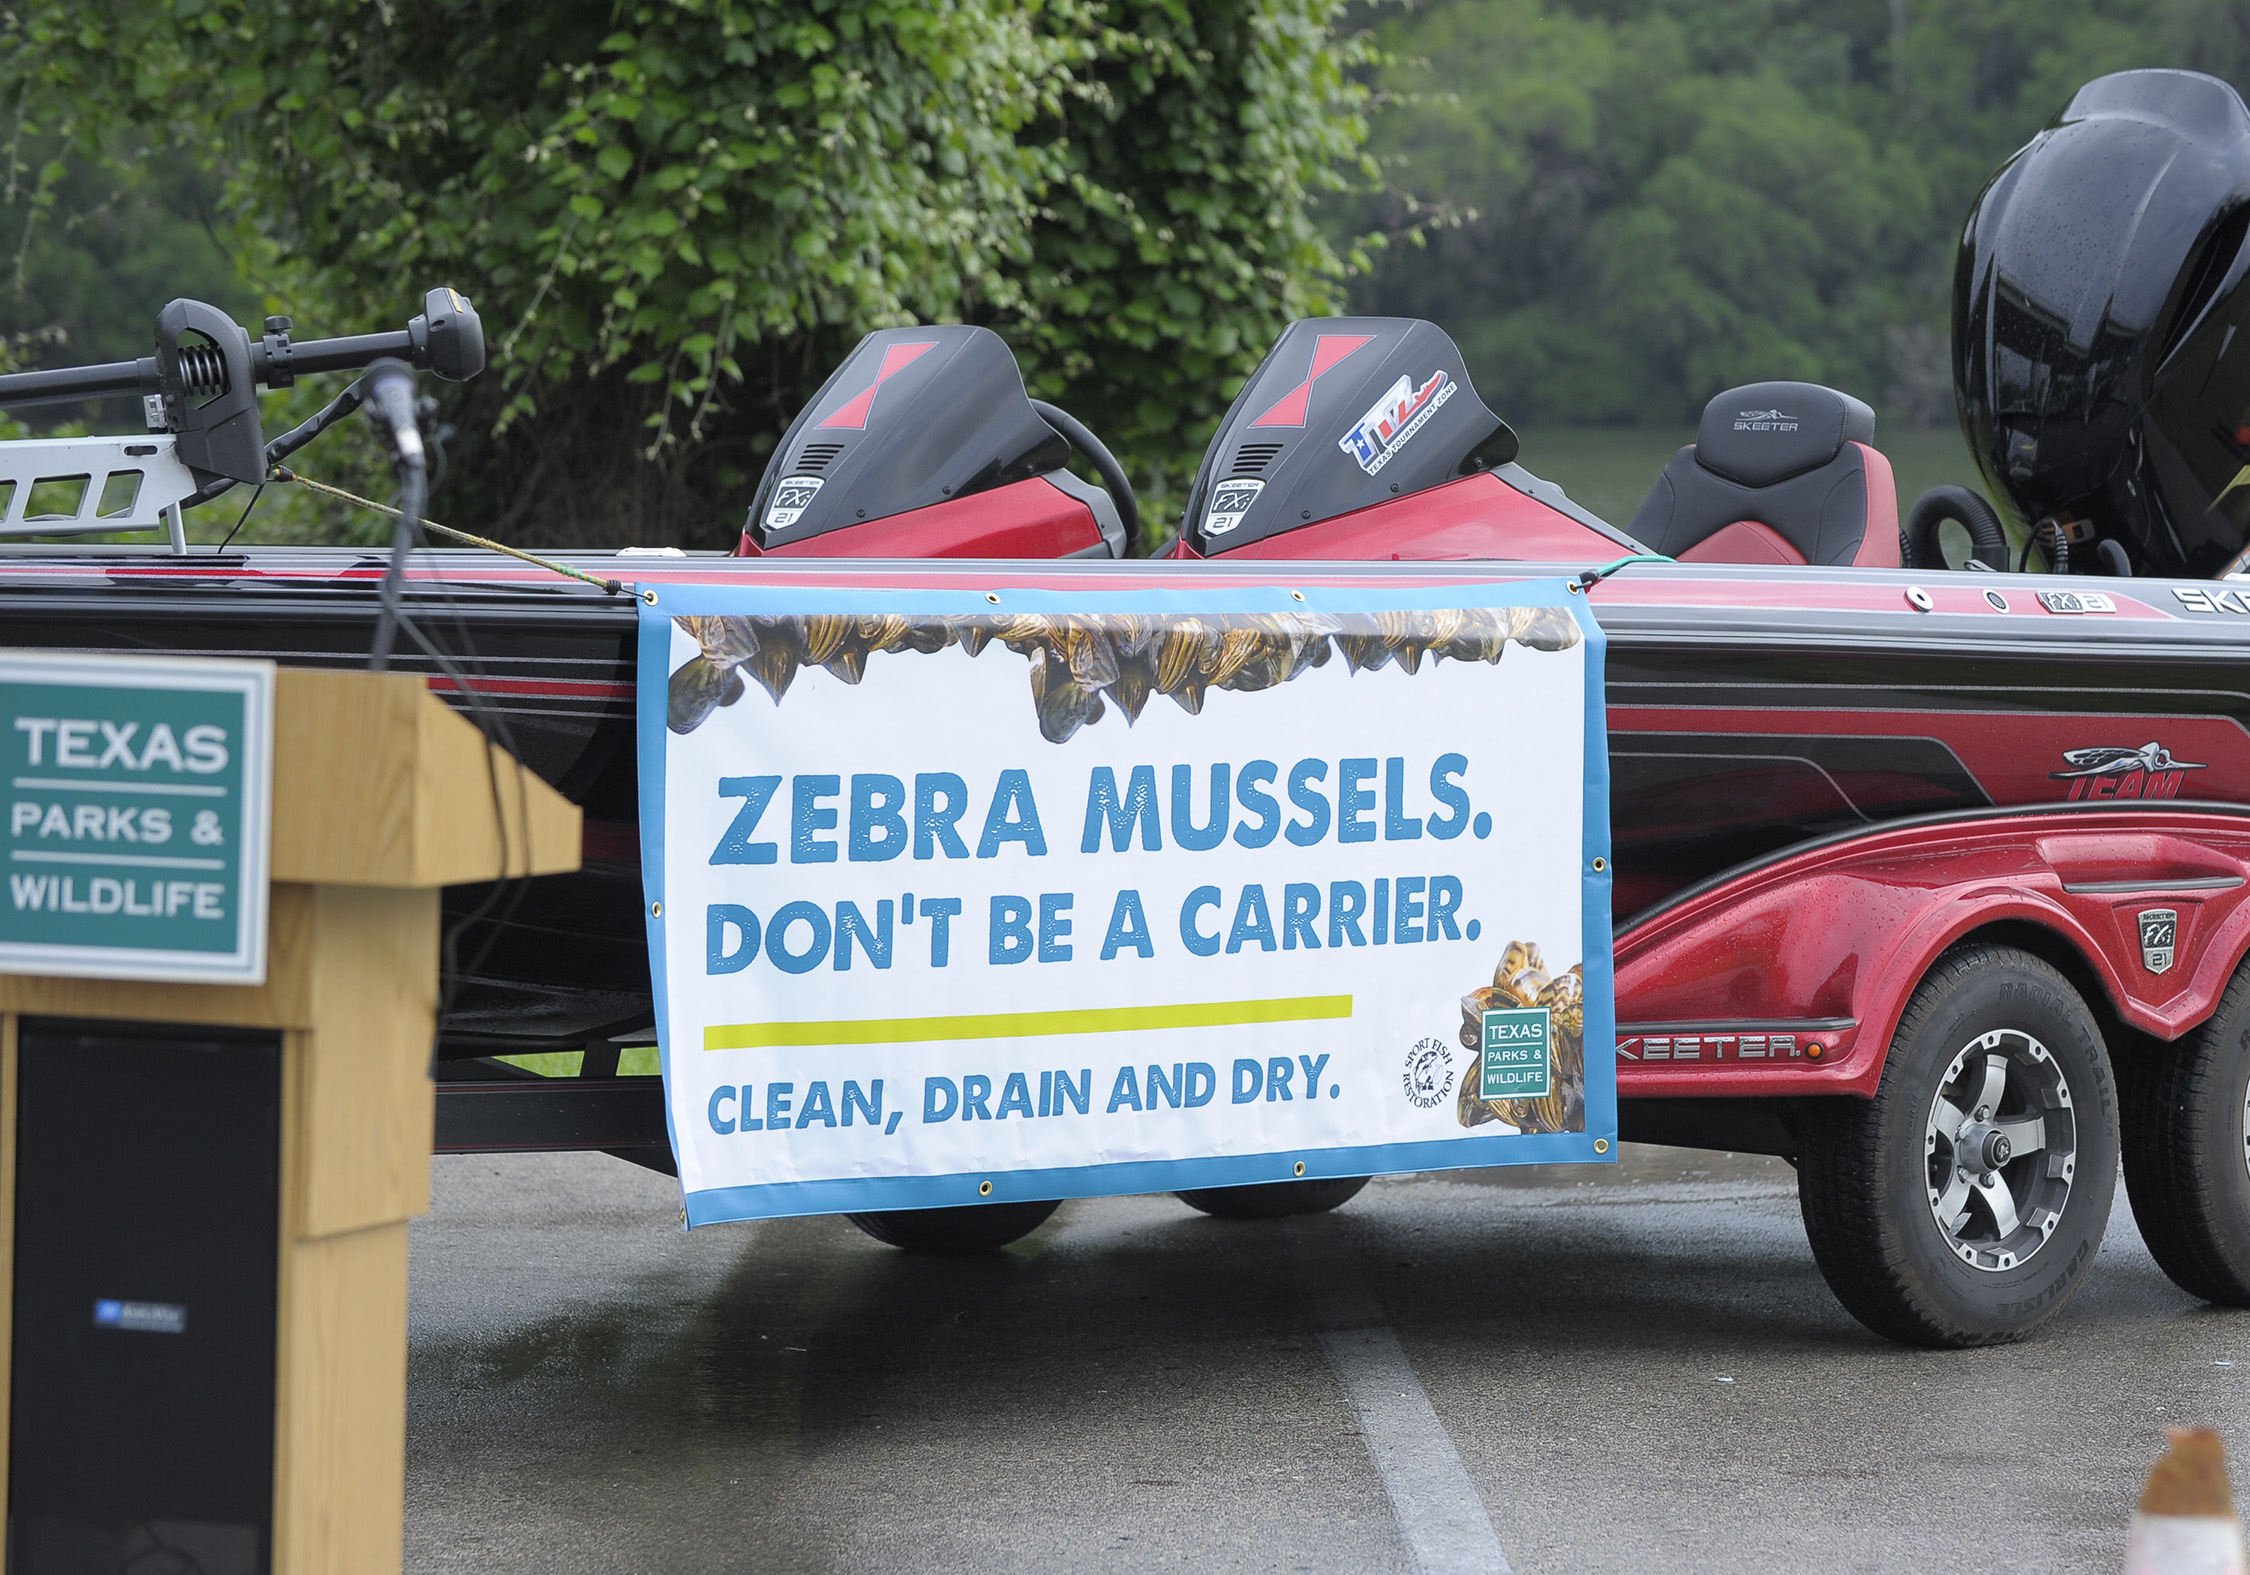 Clean, drain and dry your boats to prevent the spread of zebra mussels.